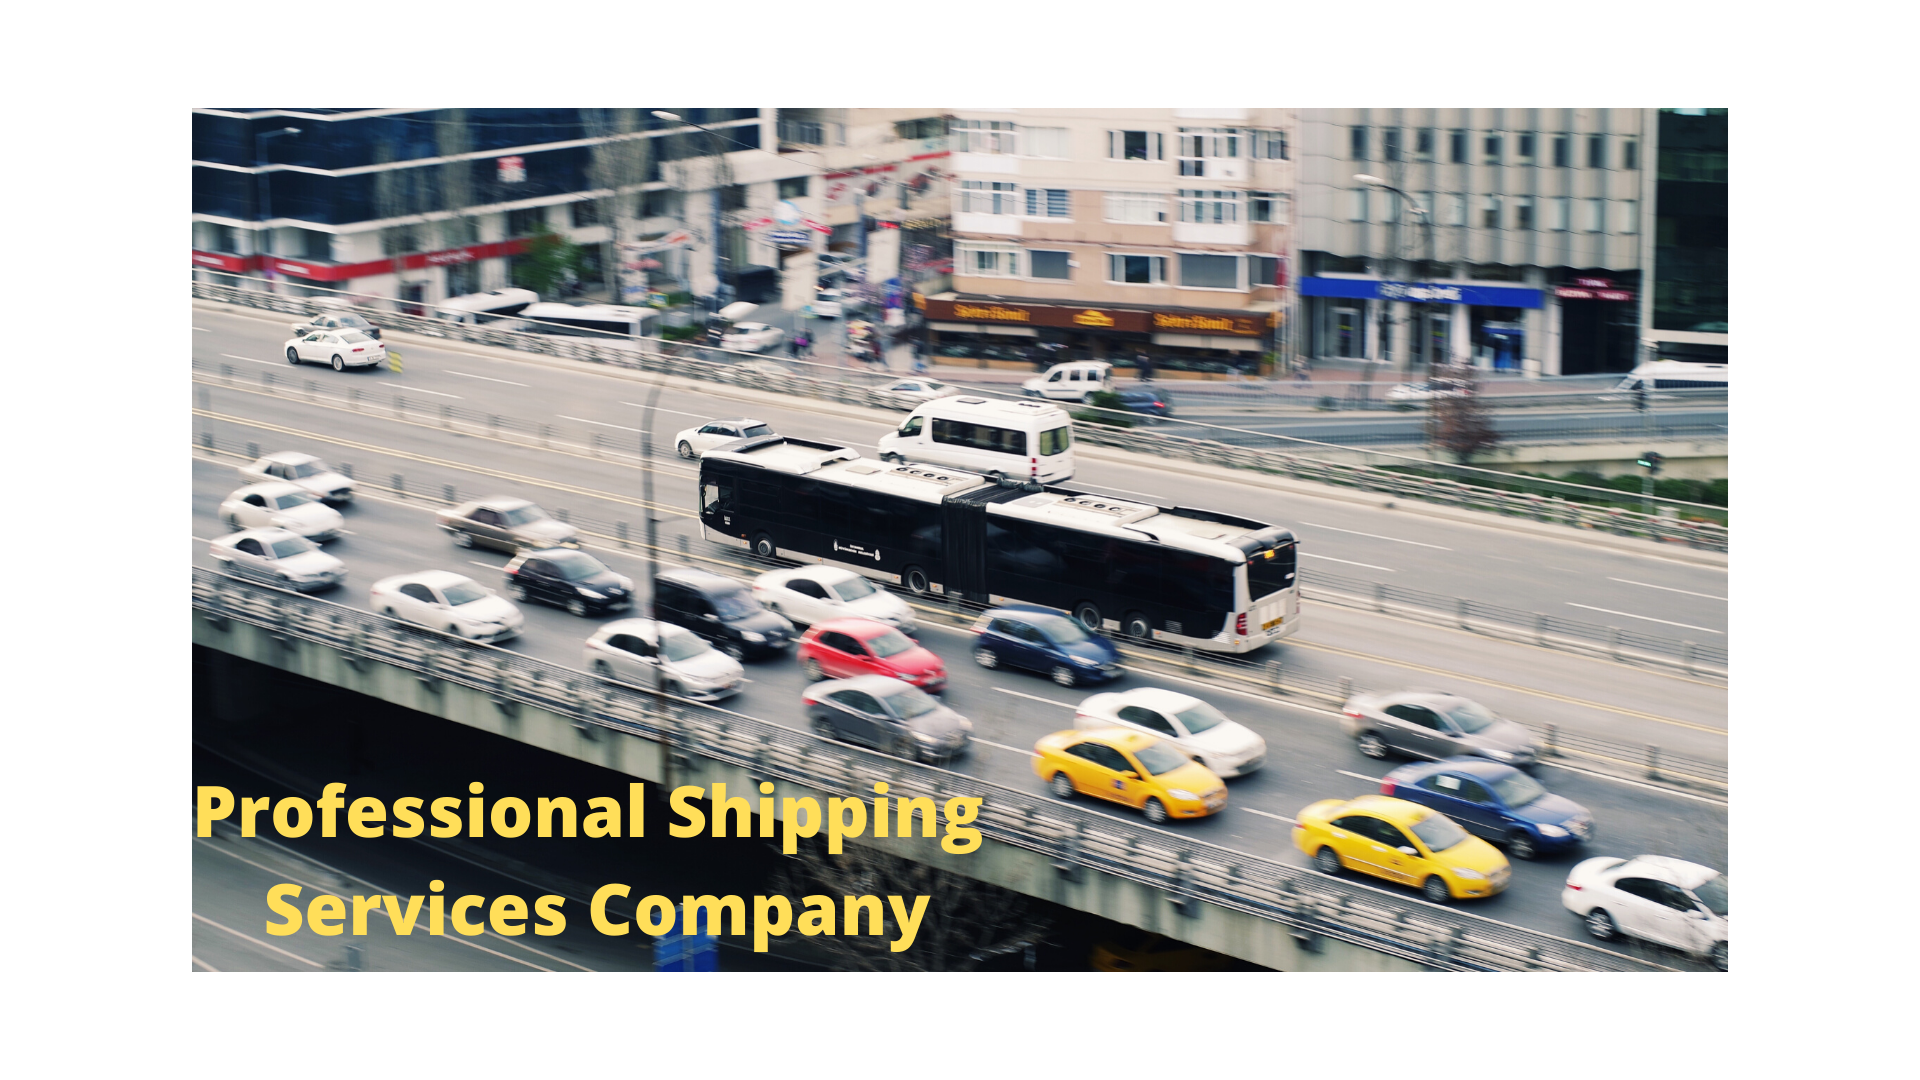 Professional Shipping Services Company